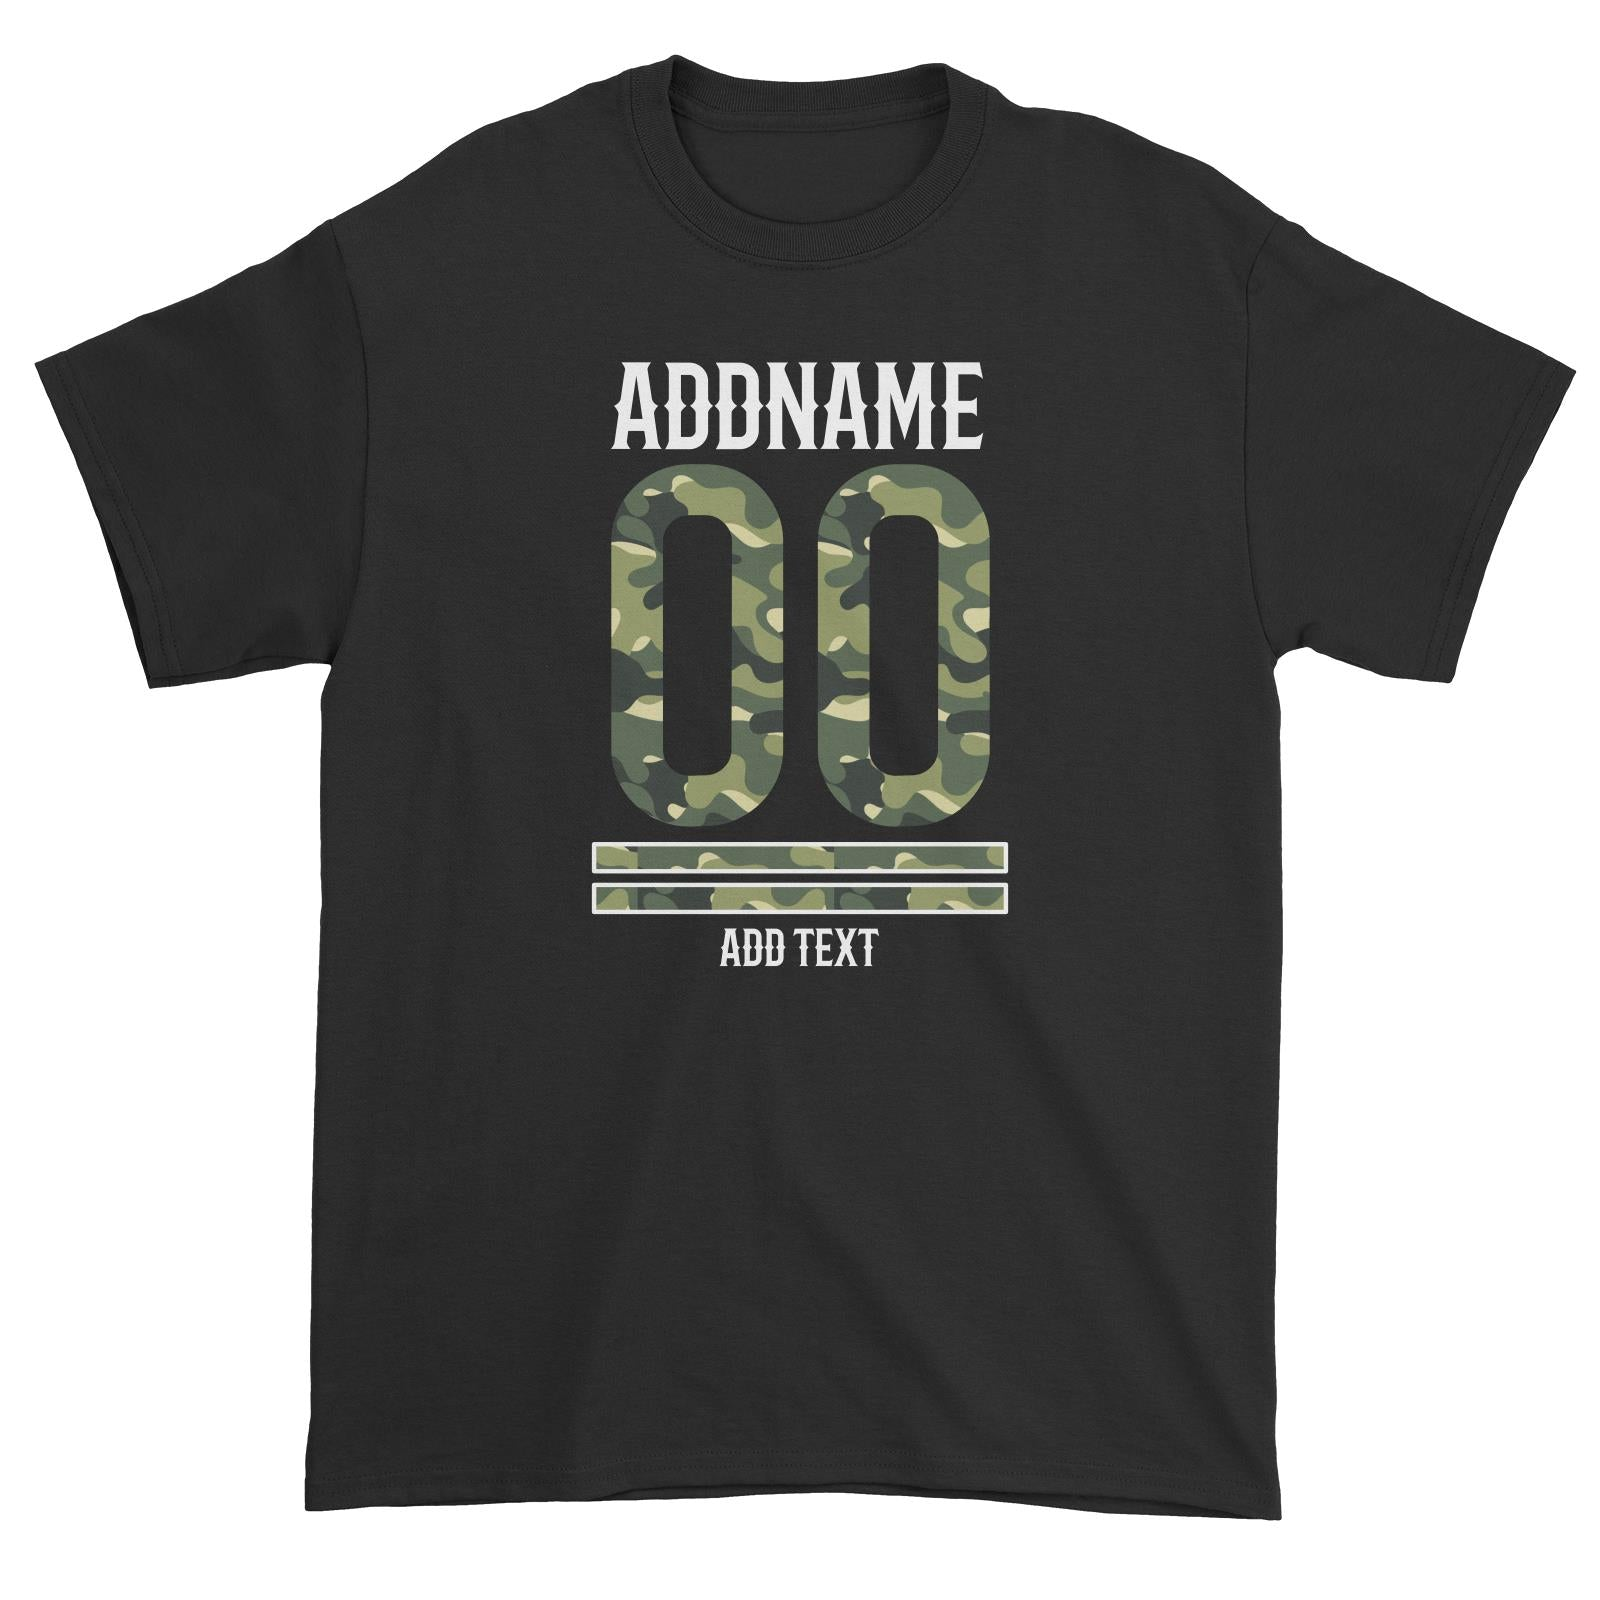 Camouflage Jersey Personalizable with Name Number and Text Unisex T-Shirt